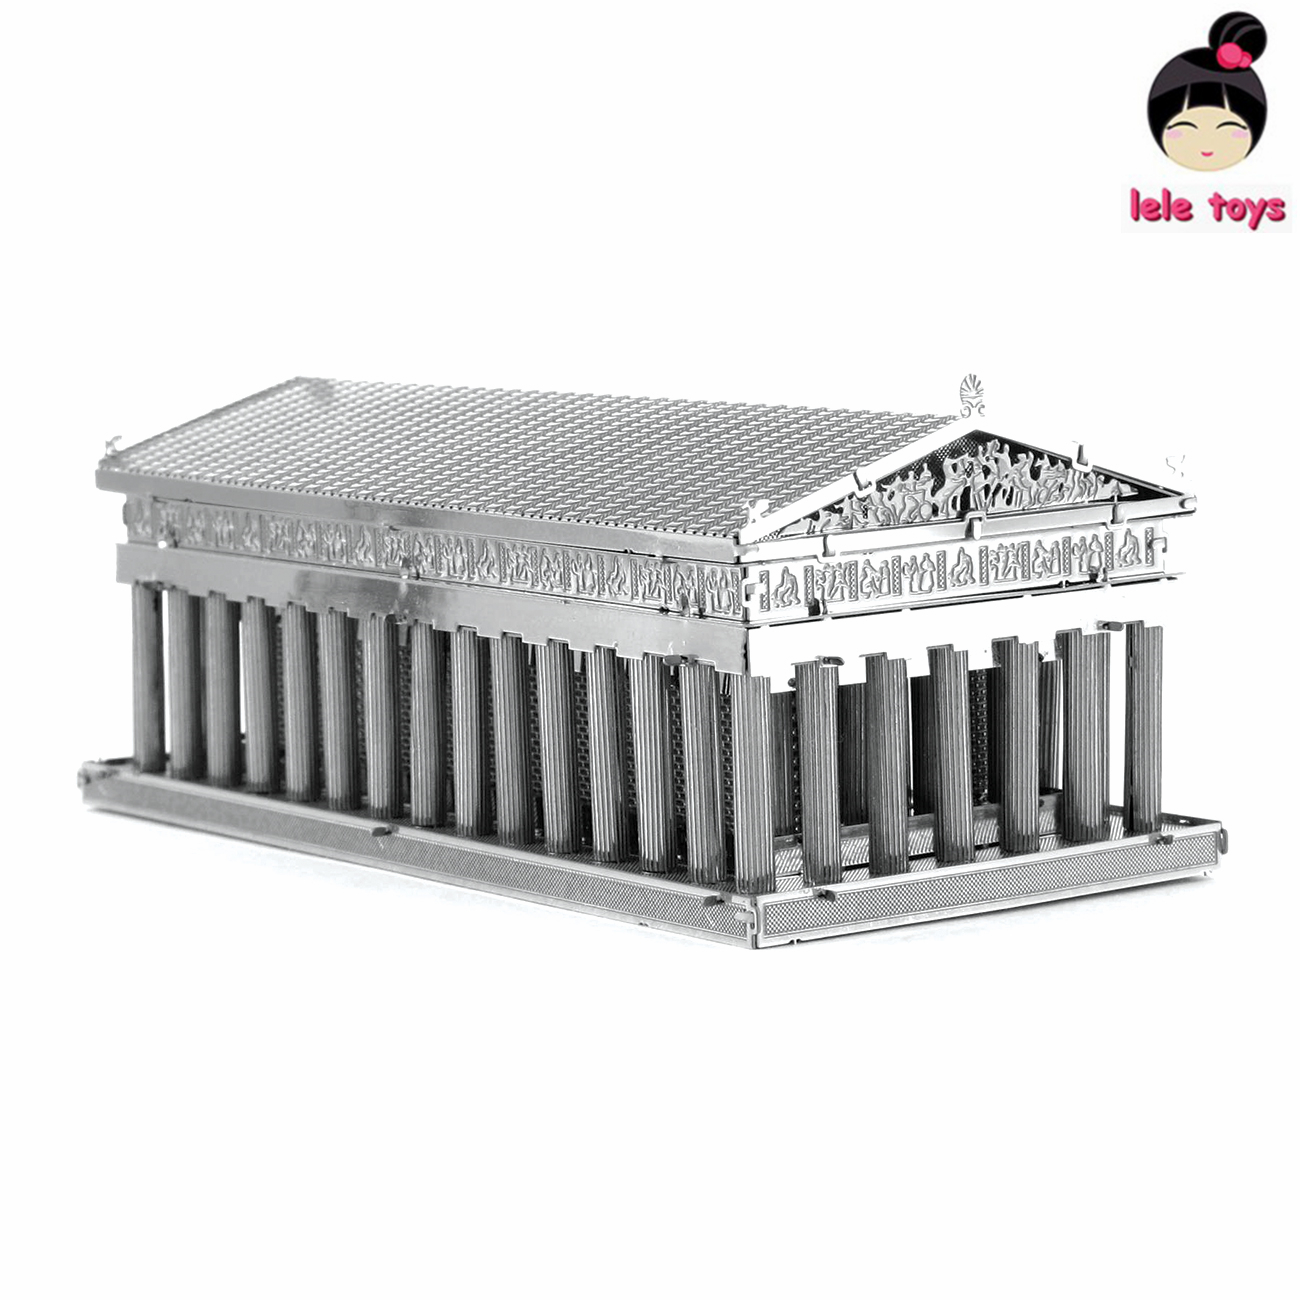 Construction Famous Buildings Over The World 3D Metal Model Puzzles PARTHENON Chinese Metal Earth Stainless Steel(China (Mainland))